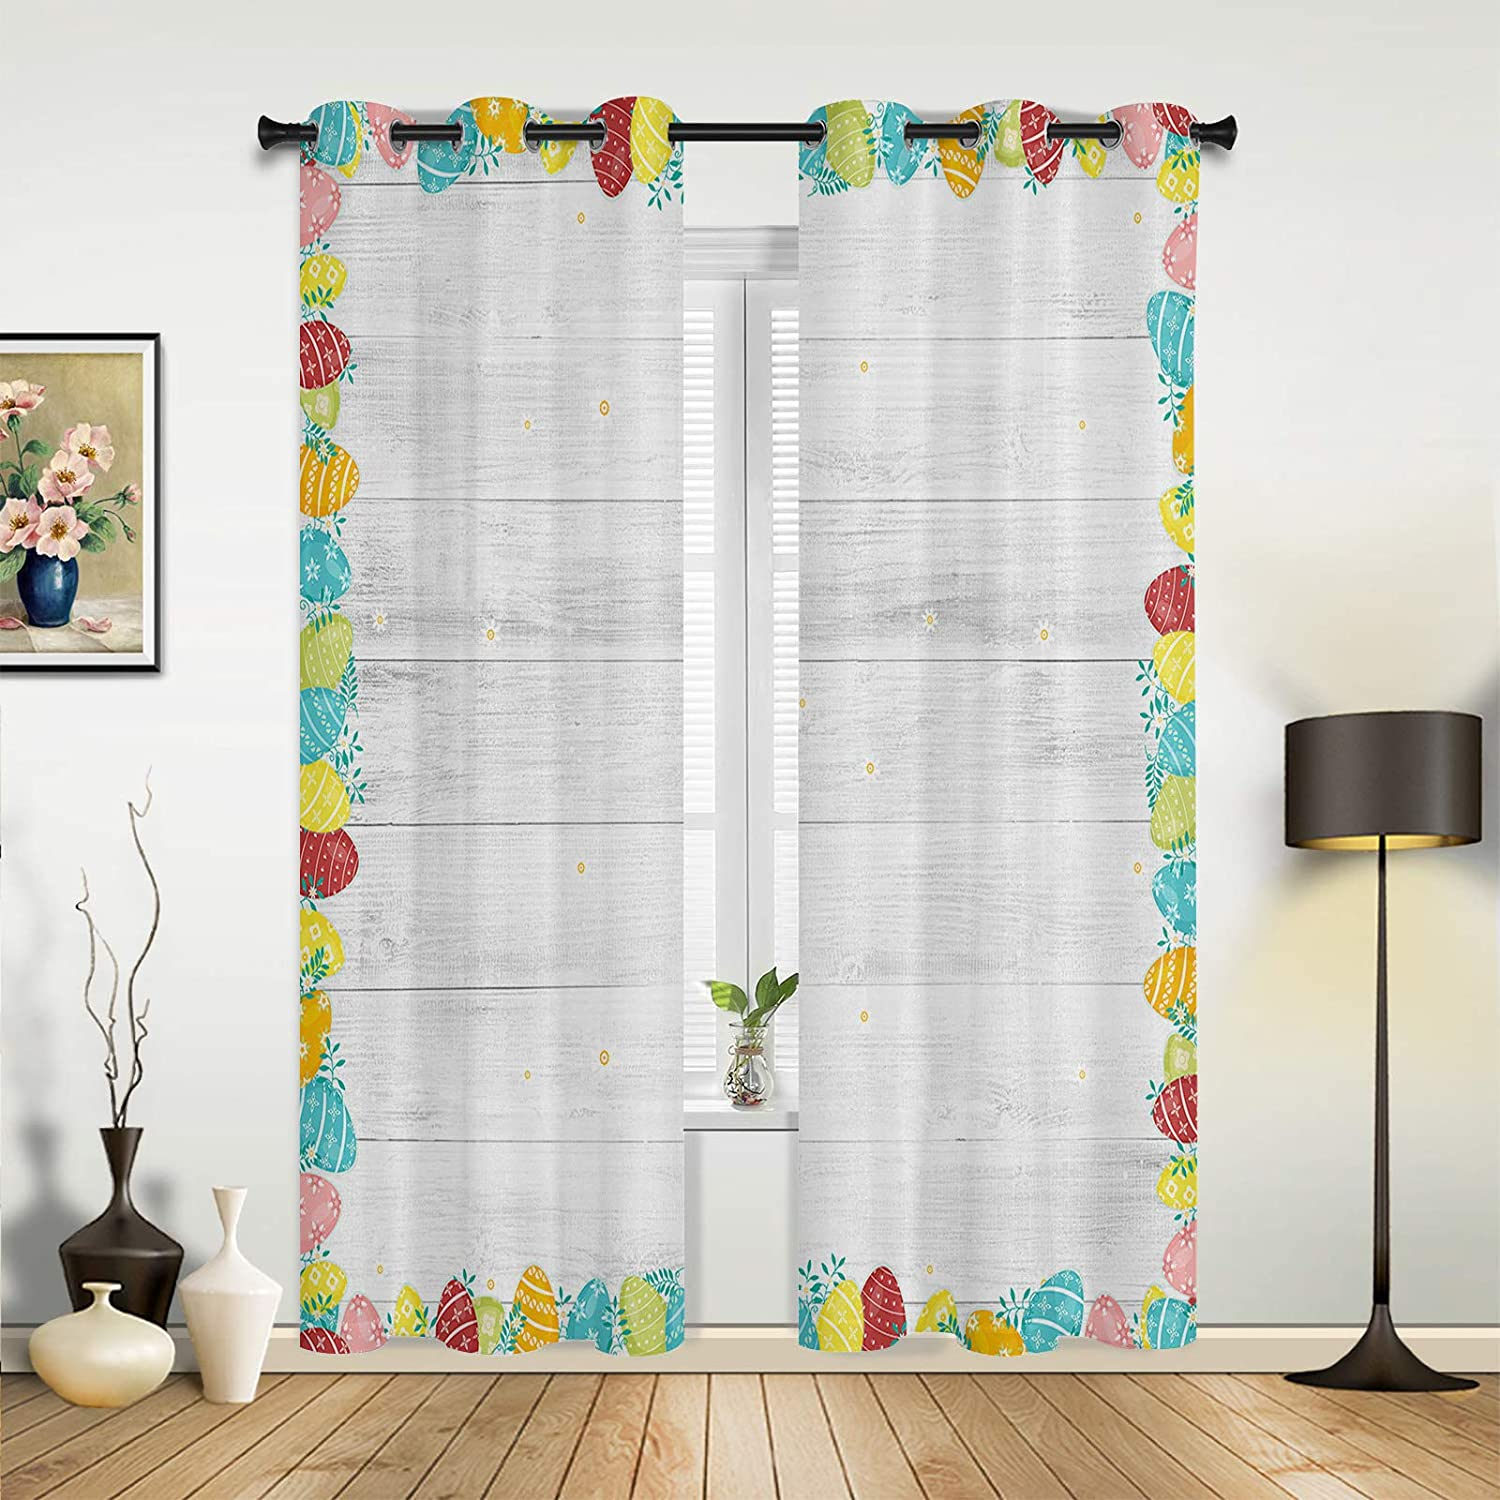 Window Sheer Curtains National products for Bedroom Living Easter Egg B Max 52% OFF Room Happy